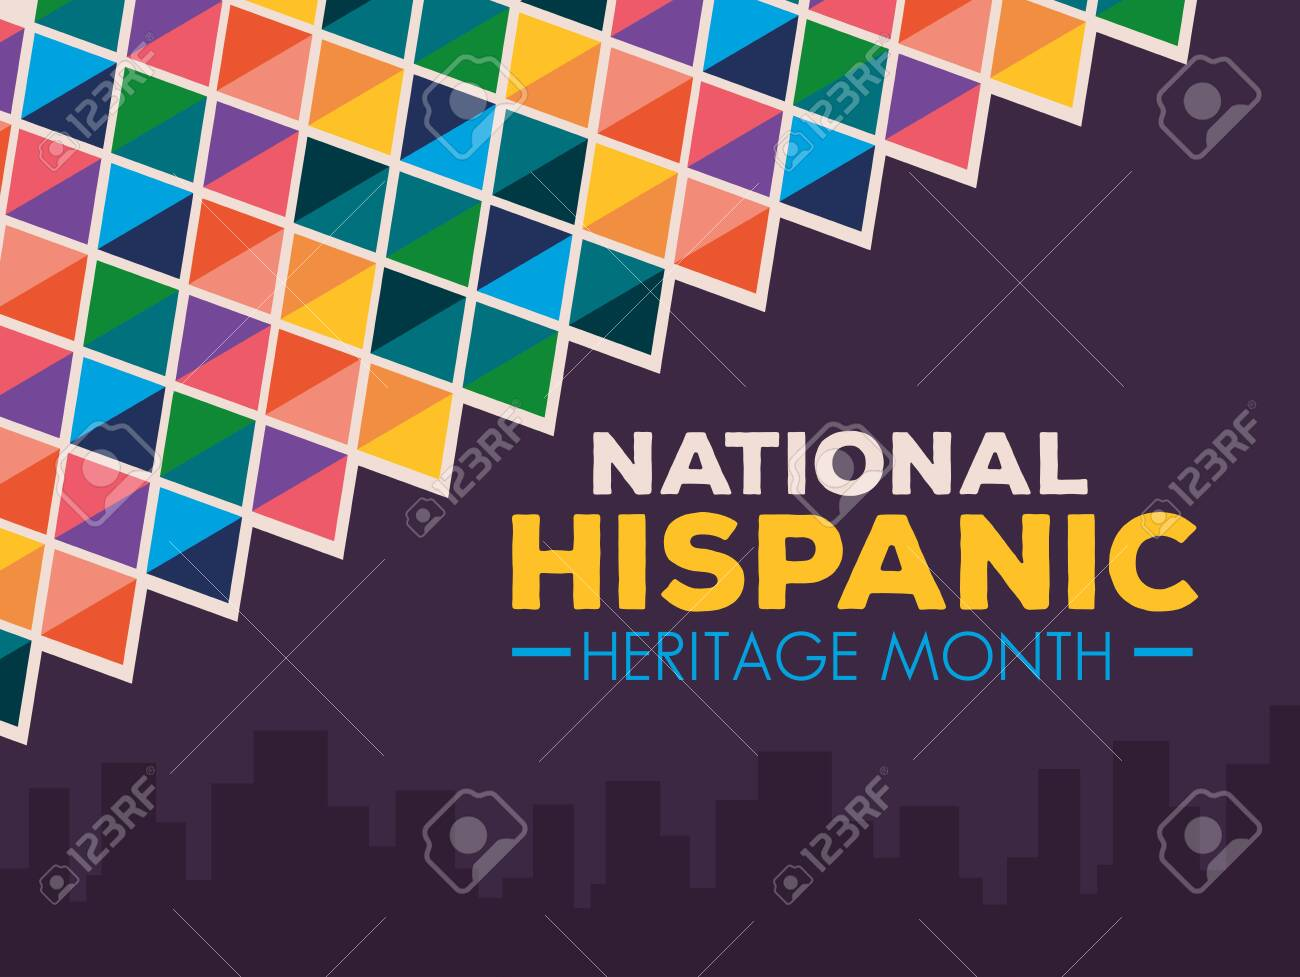 hispanic and latino americans culture, national hispanic heritage month in september and october, banner and background vector illustration design - 154555766